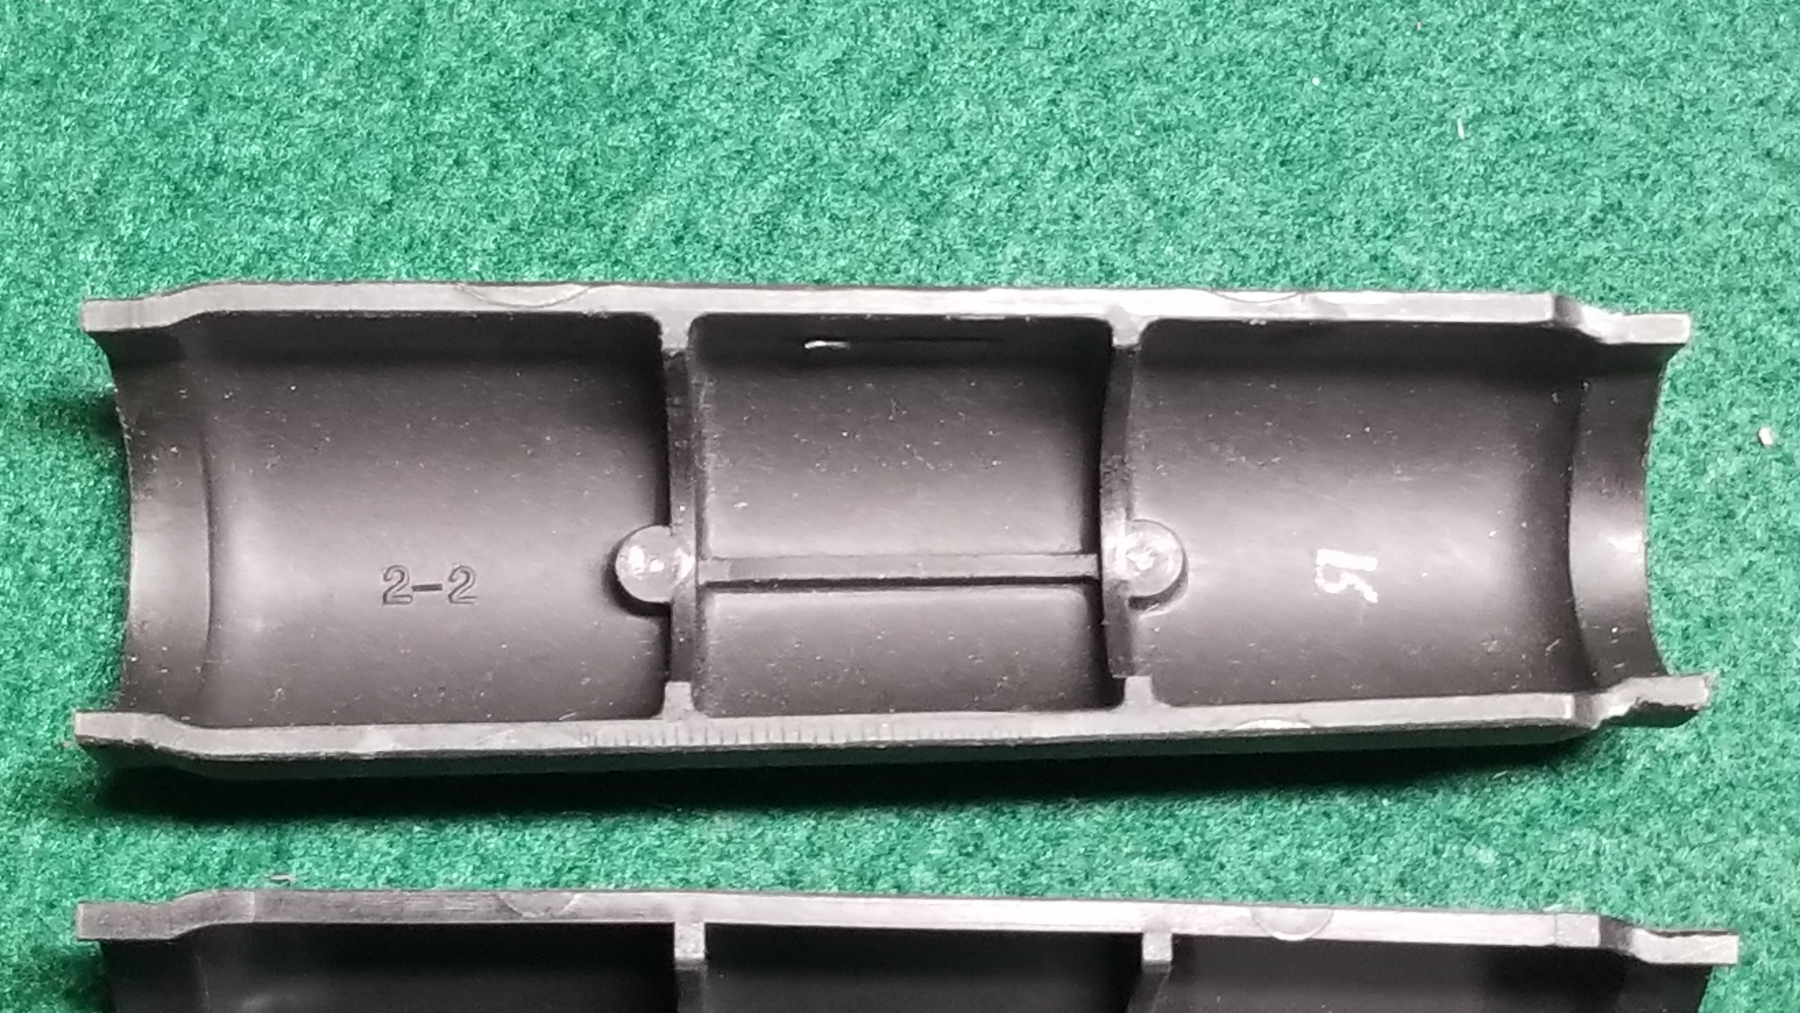 Upper is Izmash fast tube cover. Lower is Arsenal US.  Note the 2-2 mold ID.